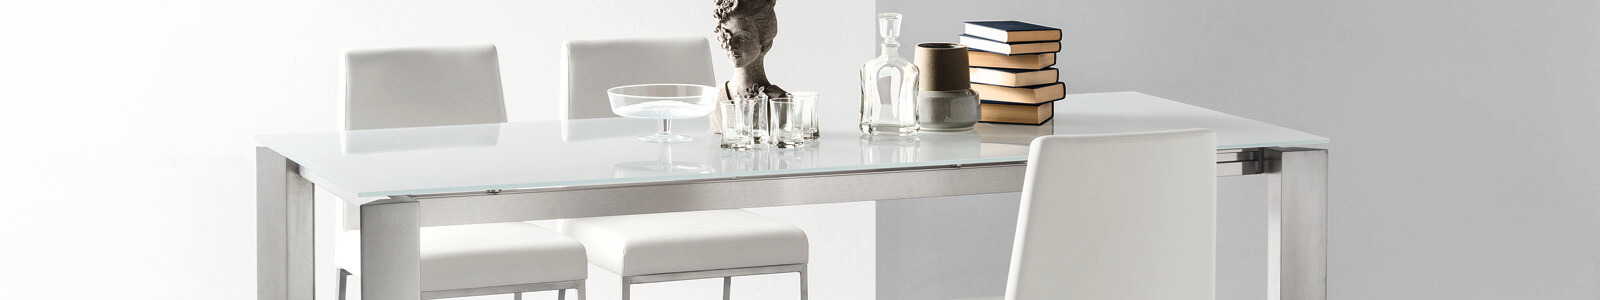 Connubia by Calligaris Banner